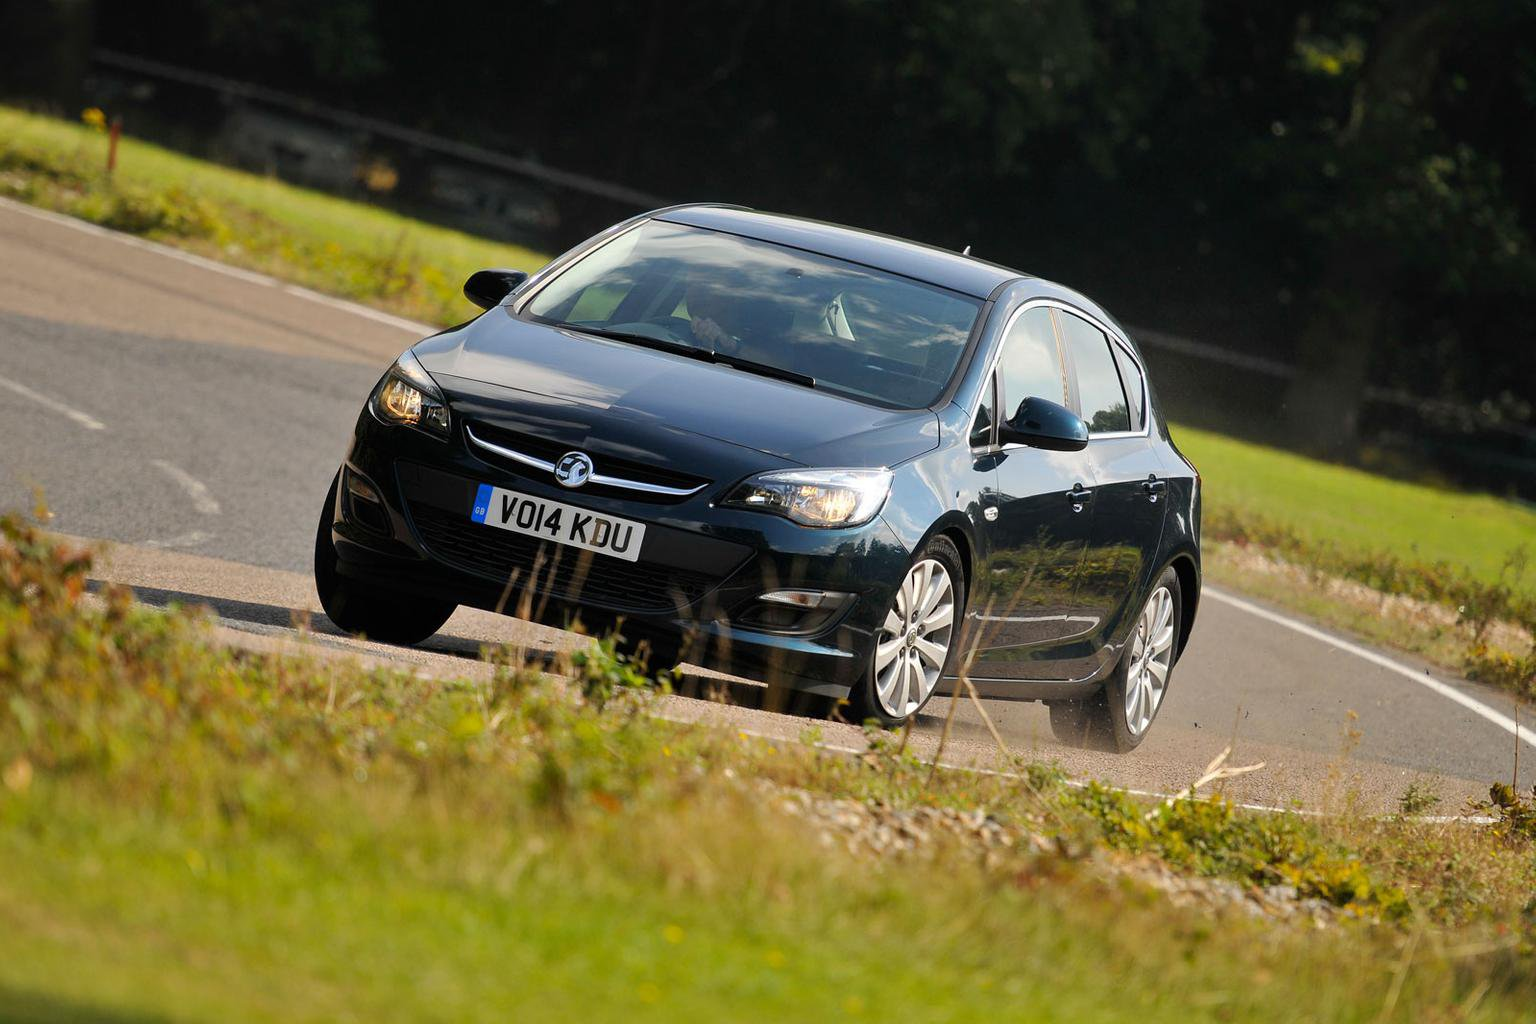 2014 Vauxhall Astra 1.6 CDTi Tech Line review